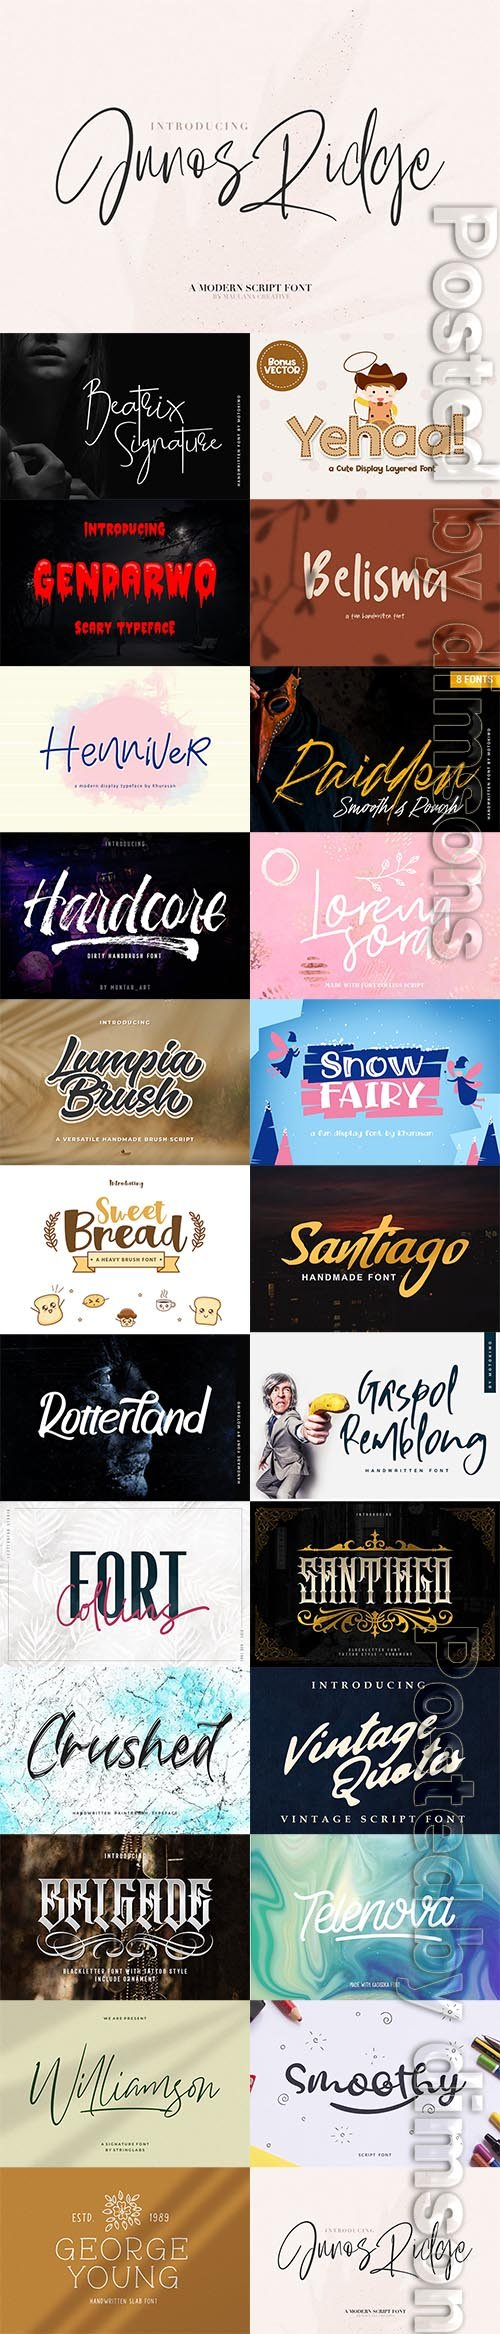 24 Fresh Font Bundle 2019 Vol 8